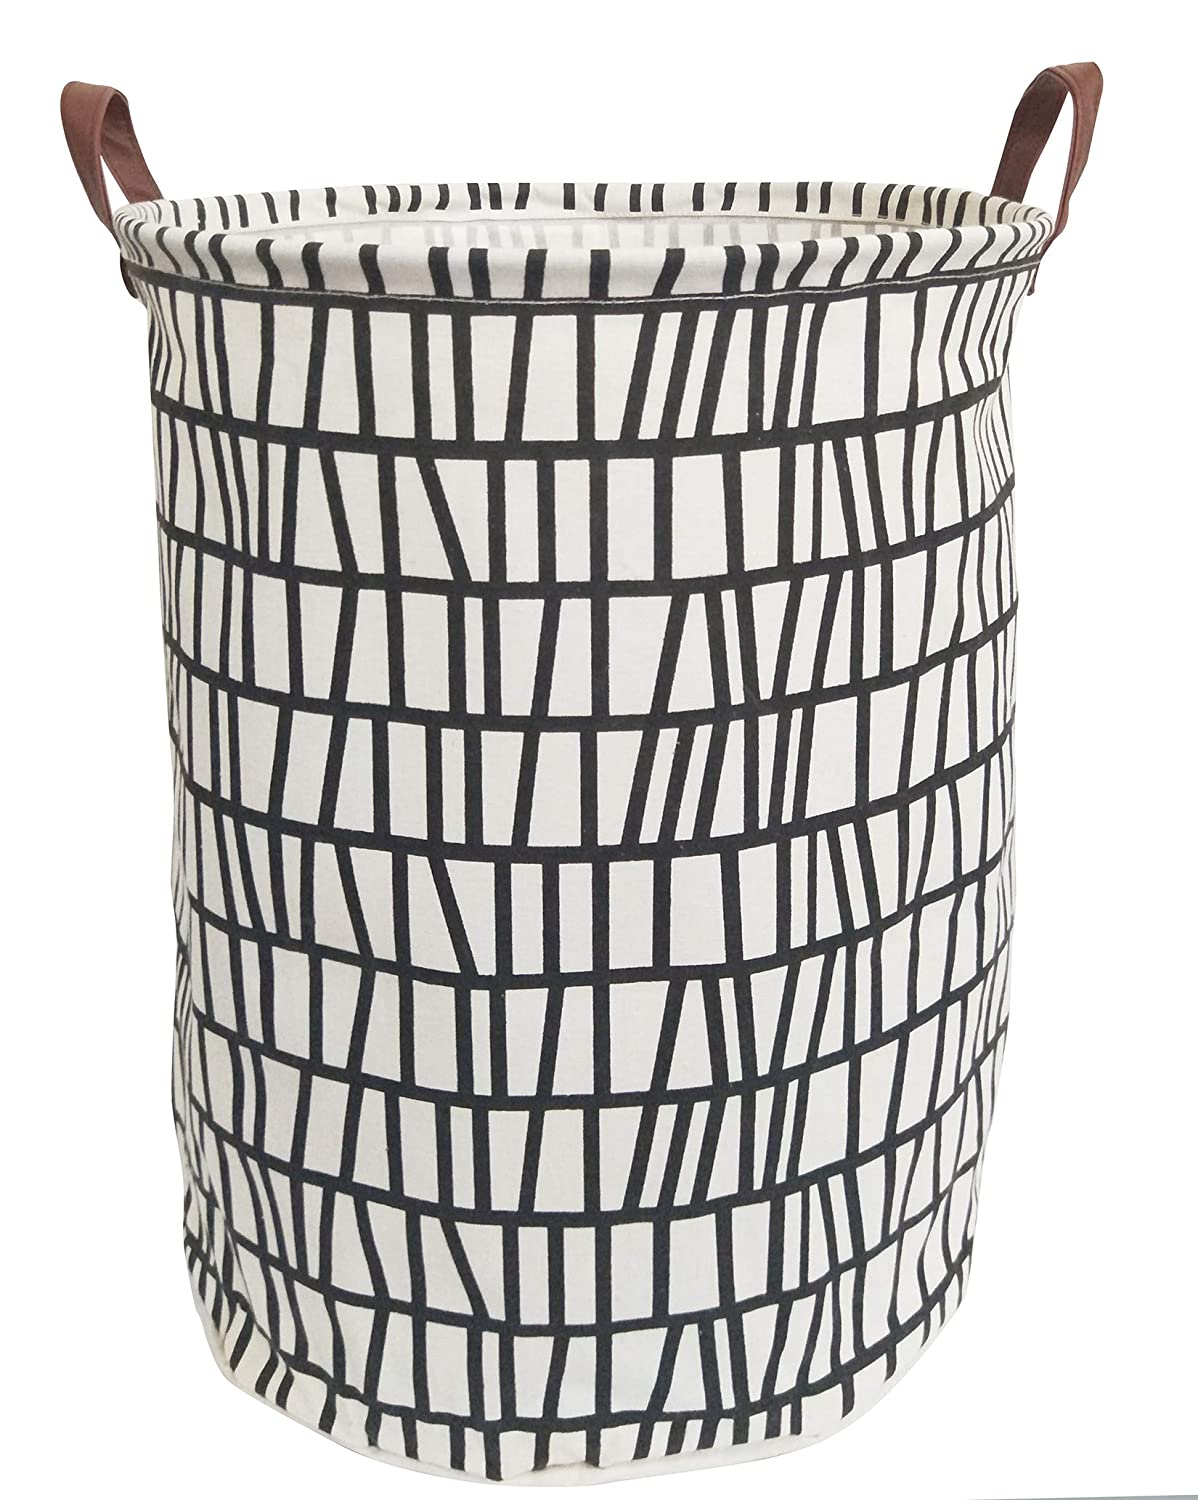 ESSME Laundry Hamper,Collapsible Canvas Waterproof Storage Bin Kids, Nursery Hamper,Gift Baskets,Home Organizer (Black Stripes)